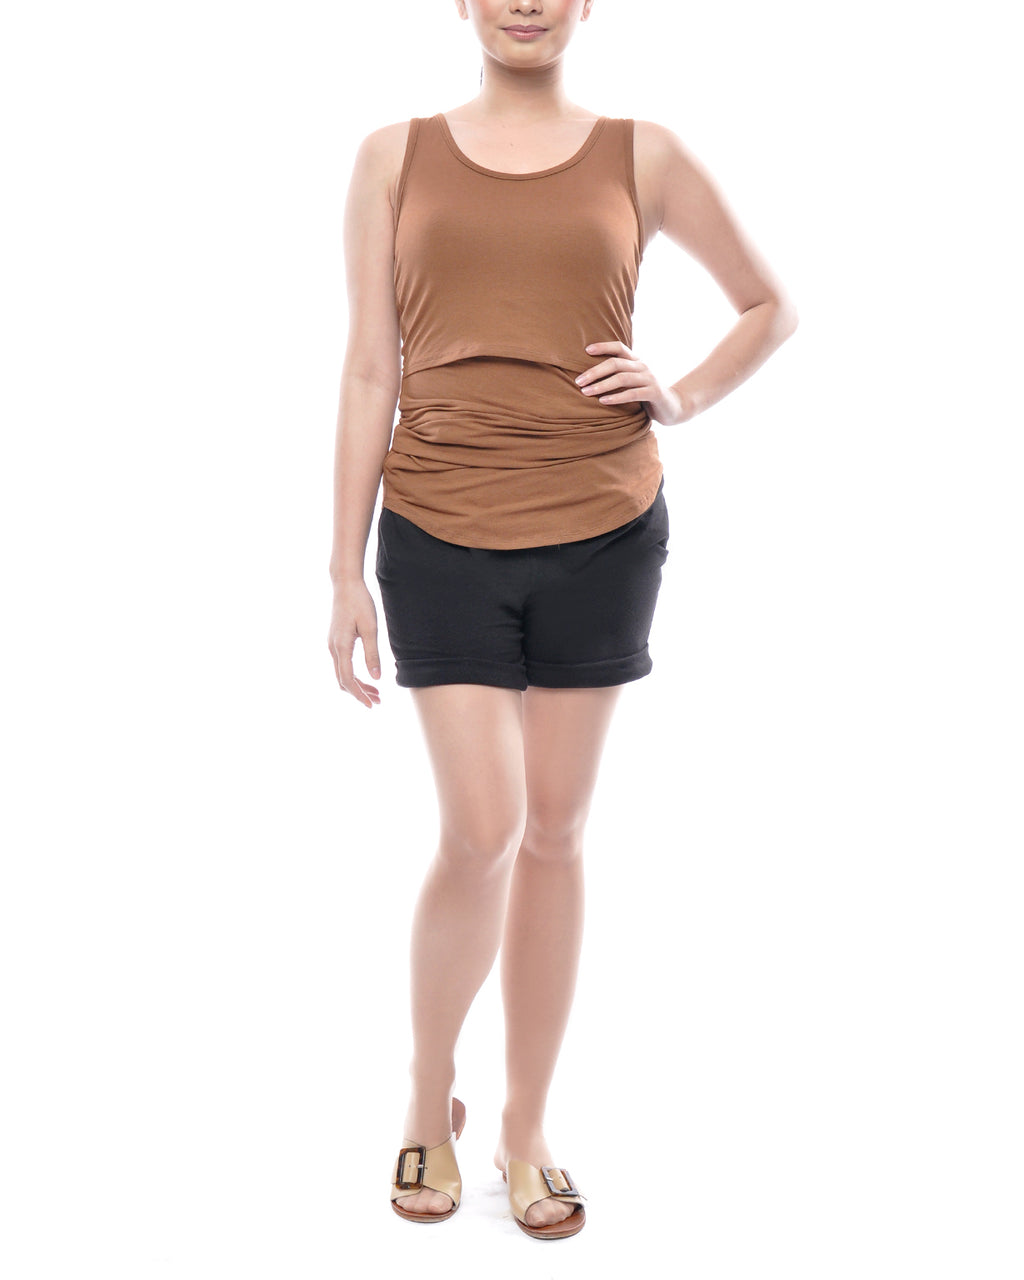 Basic Nursing Tank